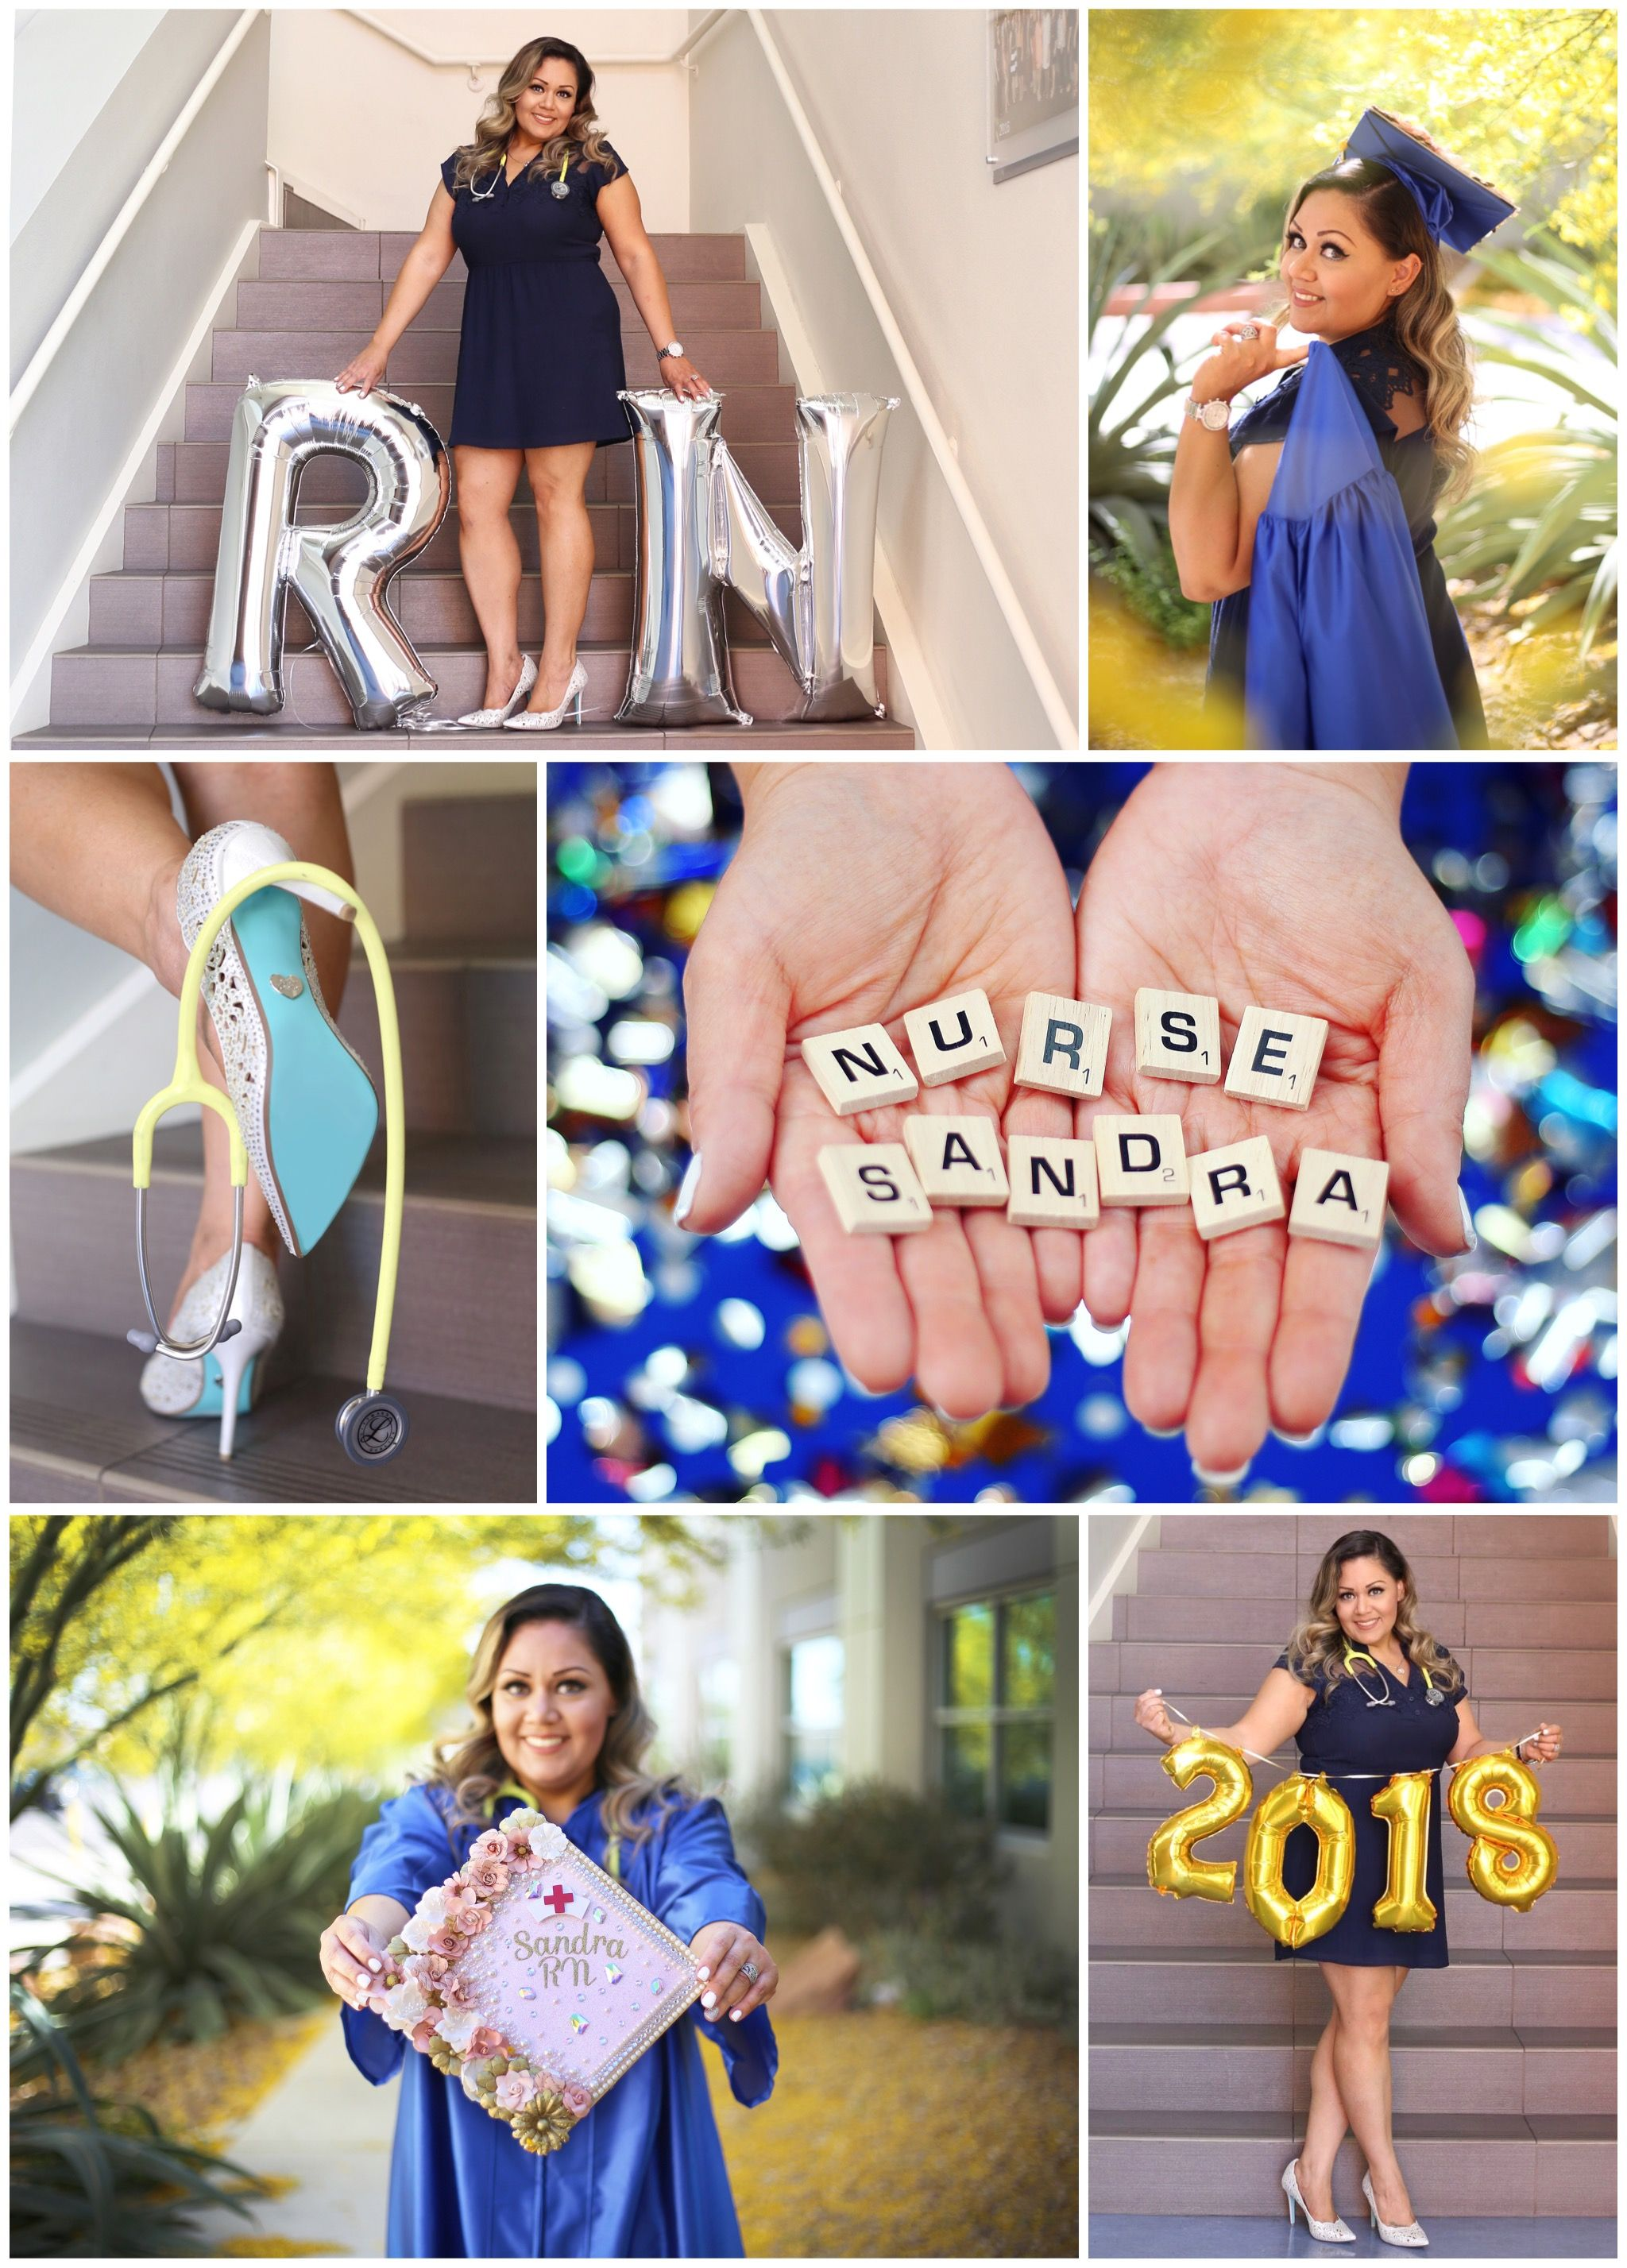 Nursing Graduation Photo Nursing Graduation Pics Photo College You Can Purchase N Nursing School Graduation Party Nursing School Graduation Nursing Graduation